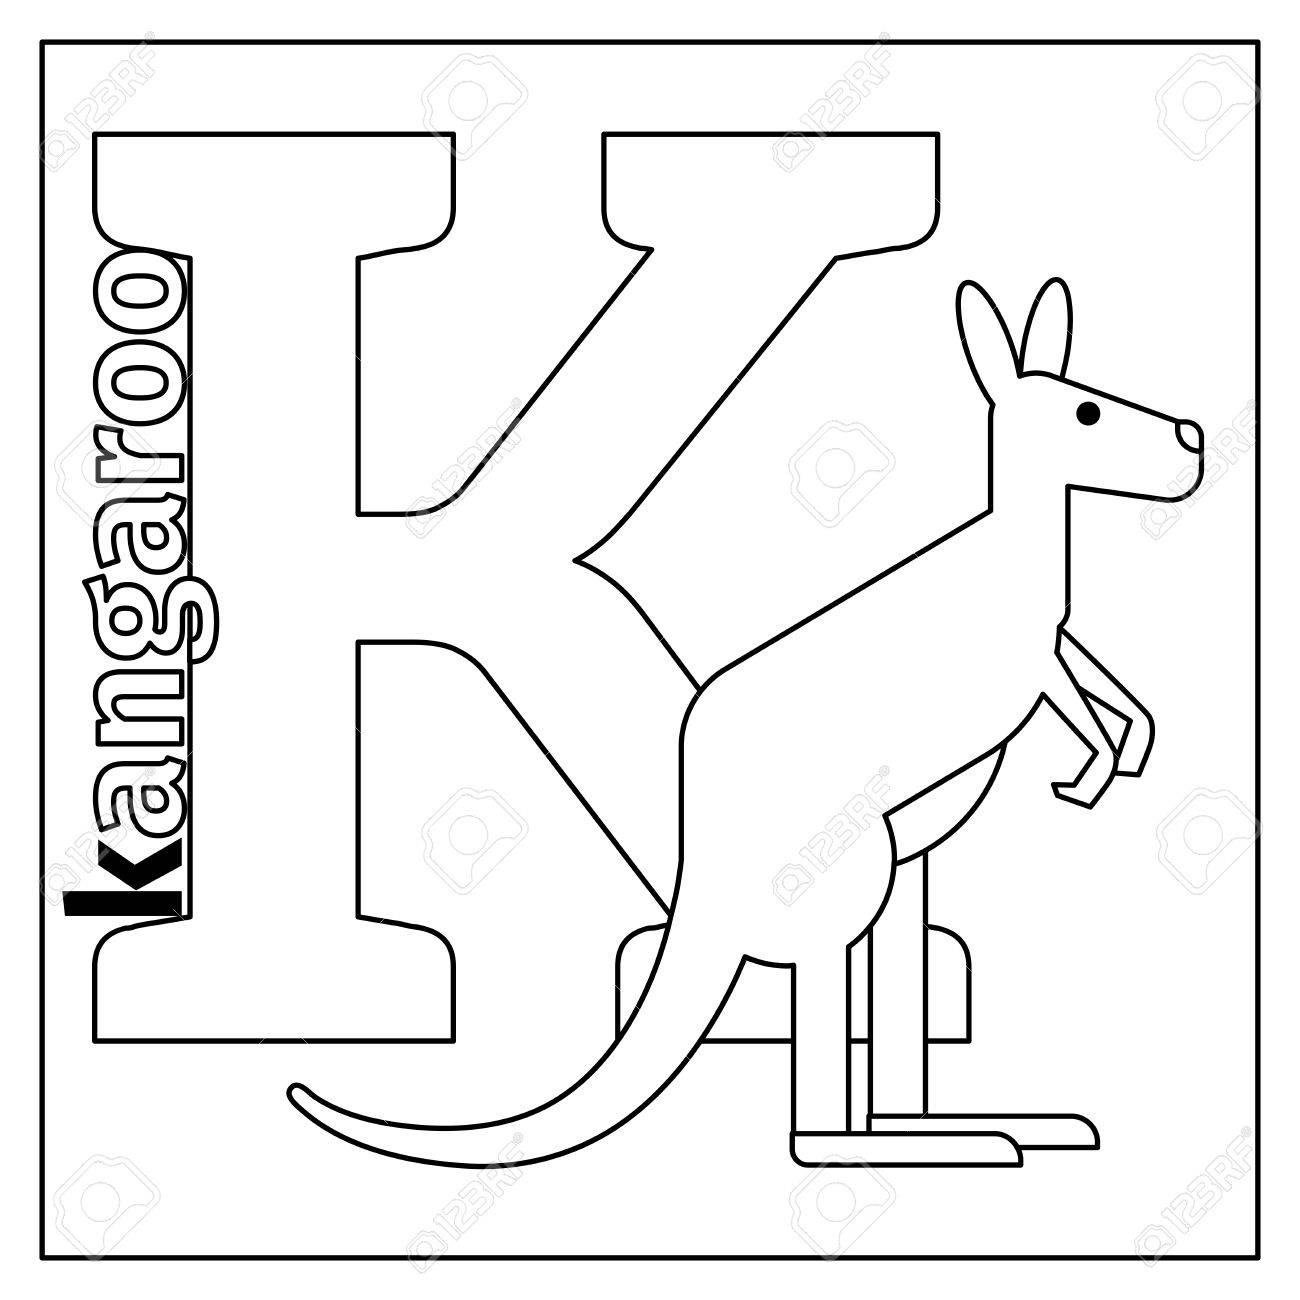 Coloring Page Or Card For Kids With English Animals Zoo Alphabet Kangaroo Letter K